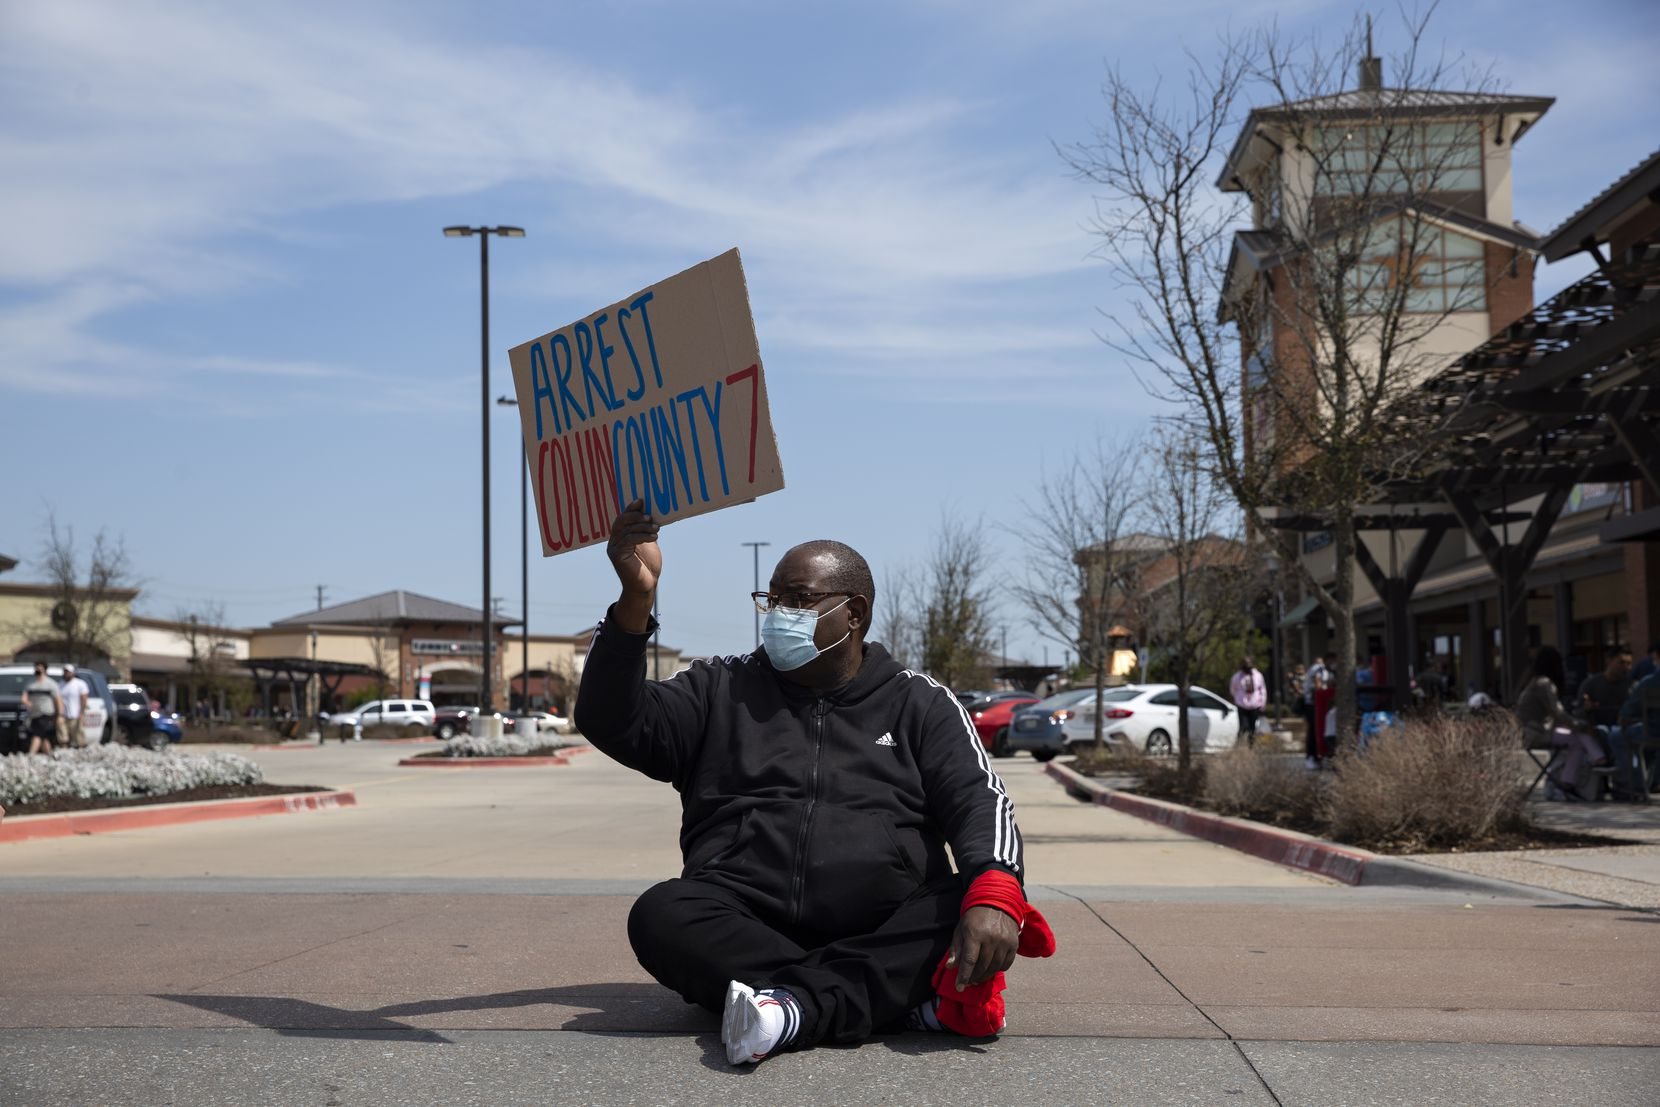 Marvin Scott Jr. sits in the road with other demonstrators to block traffic in the Allen Outlets on Sunday, March 21, 2021 demanding justice for his son Marvin Scott III, who died a week prior while in custody at the Collin County Jail on March 14, 2021. Marvin Scott III was arrested at the Allen Outlets for possession of less than two ounces of marijuana. Demonstrators called for the arrest of the ÒCollin County SevenÓ, the seven Collin County Jail employees who were placed on leave after MarvinÕs death. (Shelby Tauber/Special Contributor)